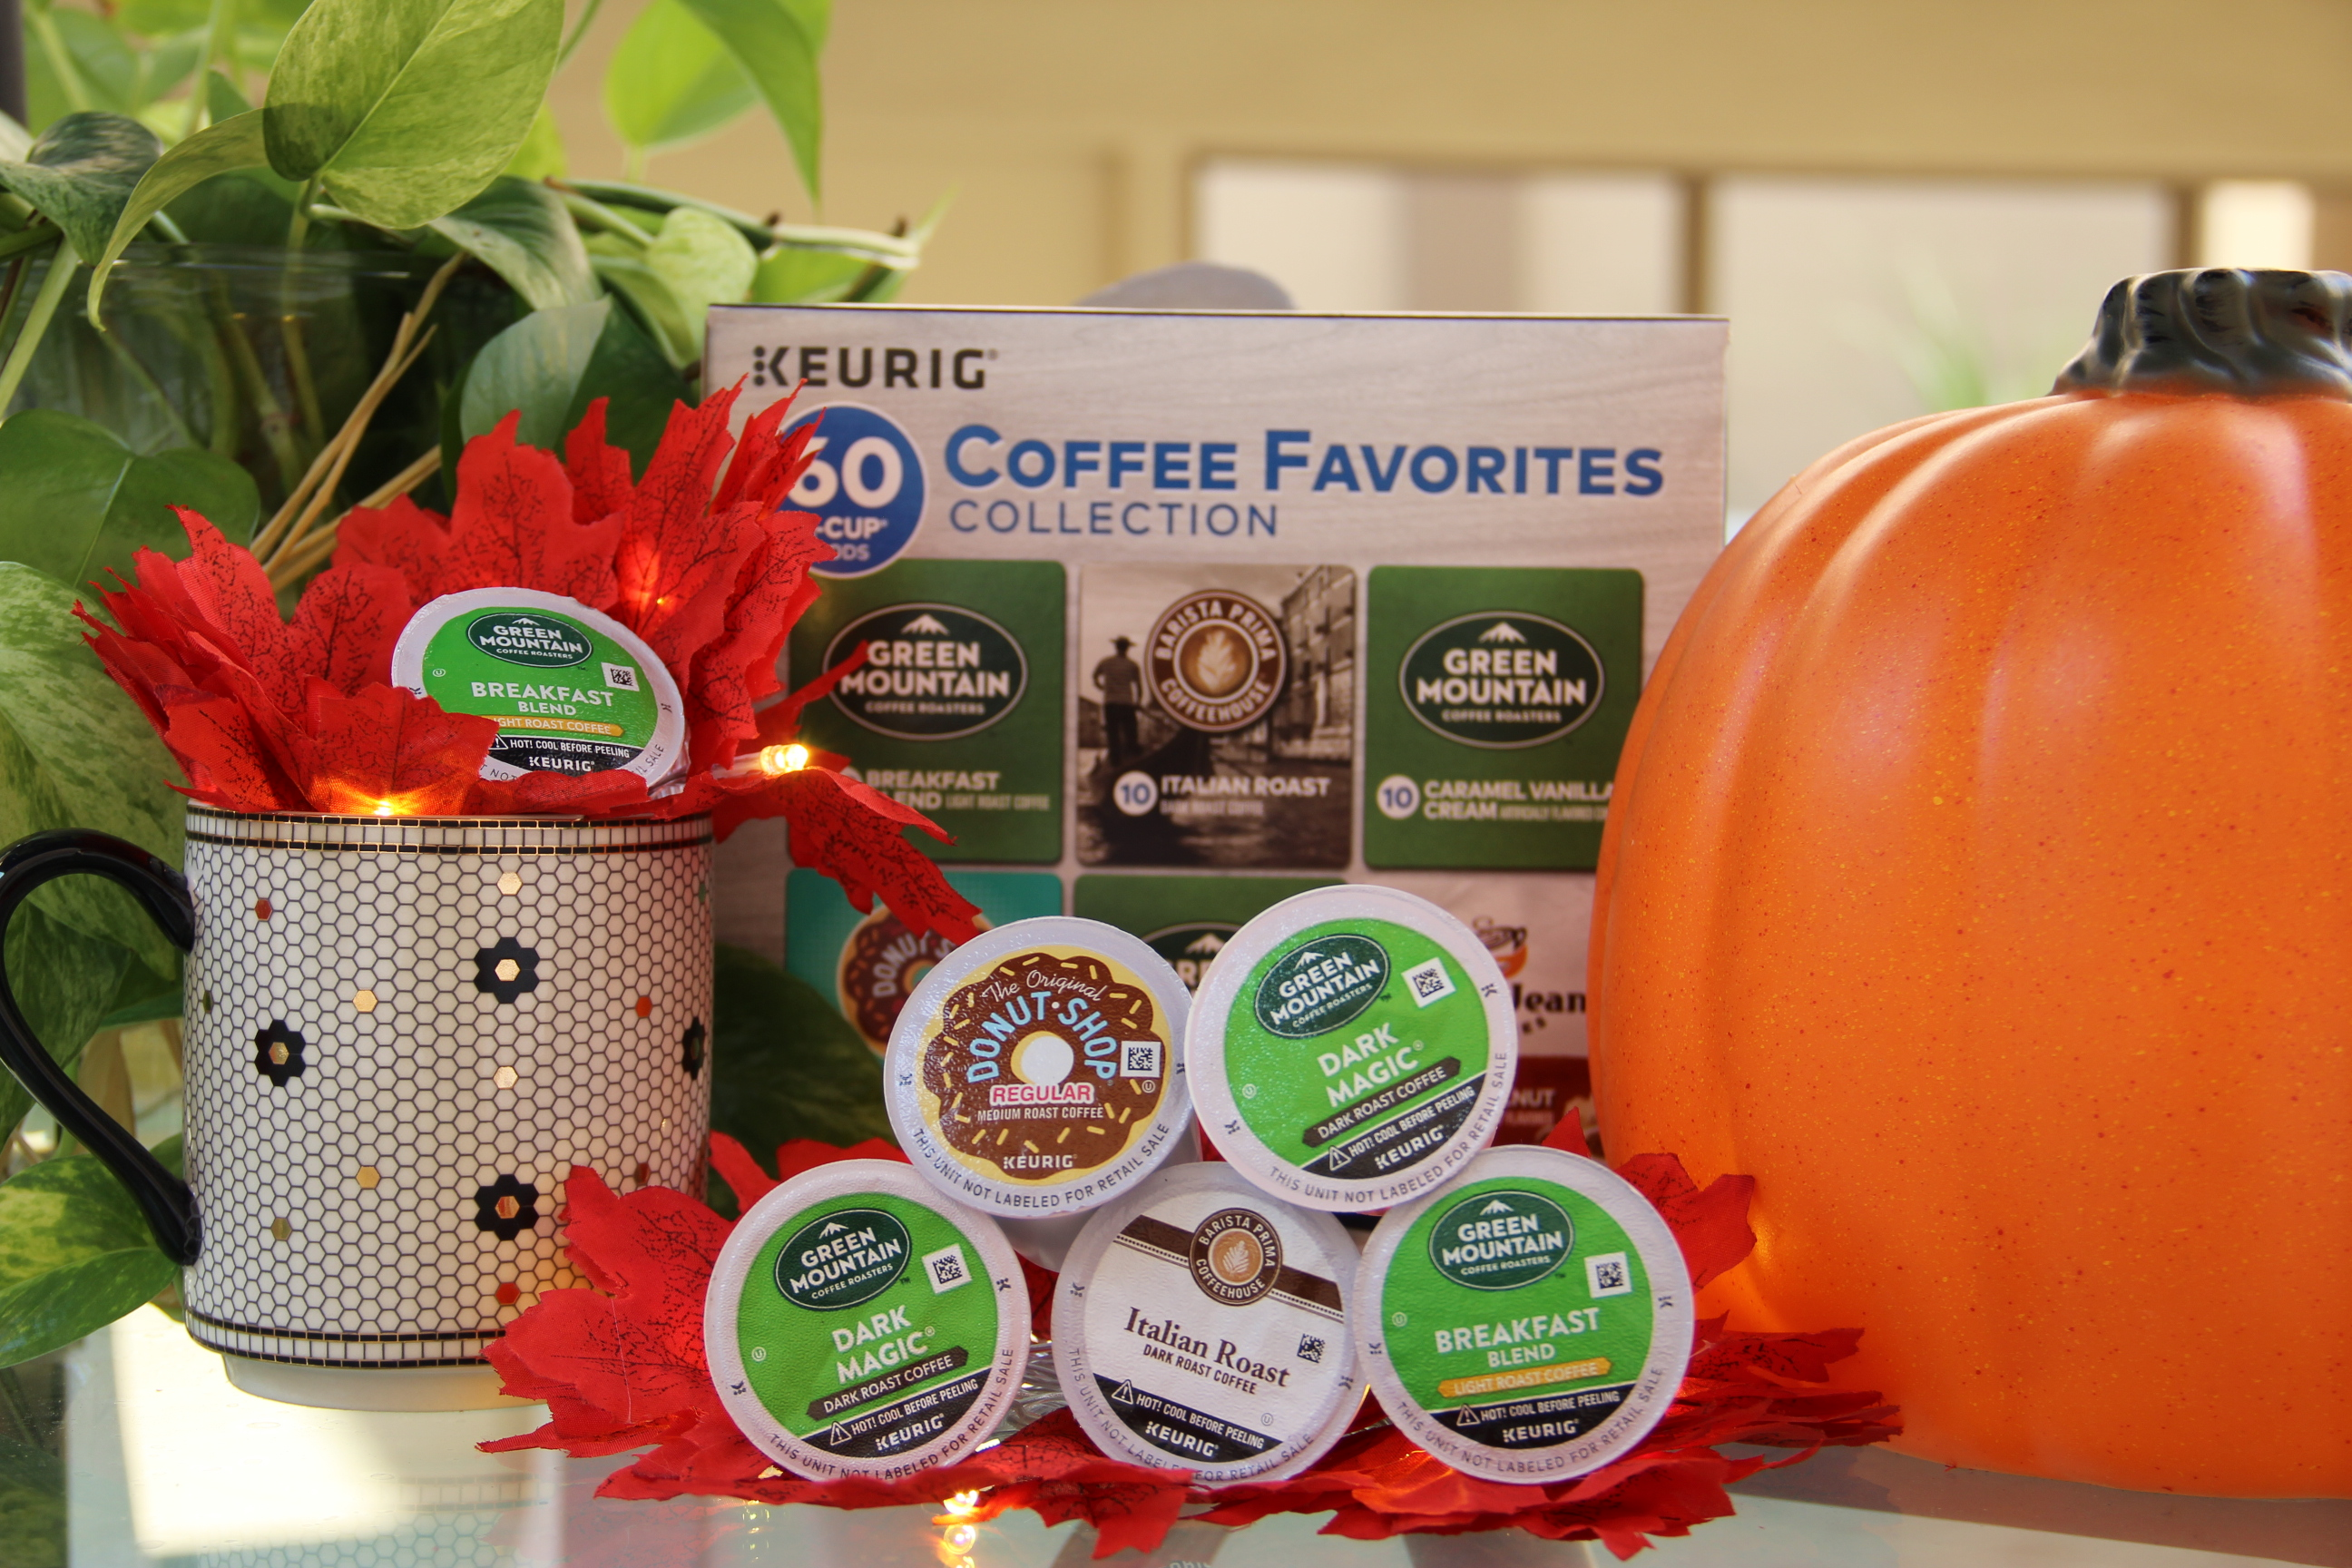 keurig, green mountain coffee, bed bath and beyond